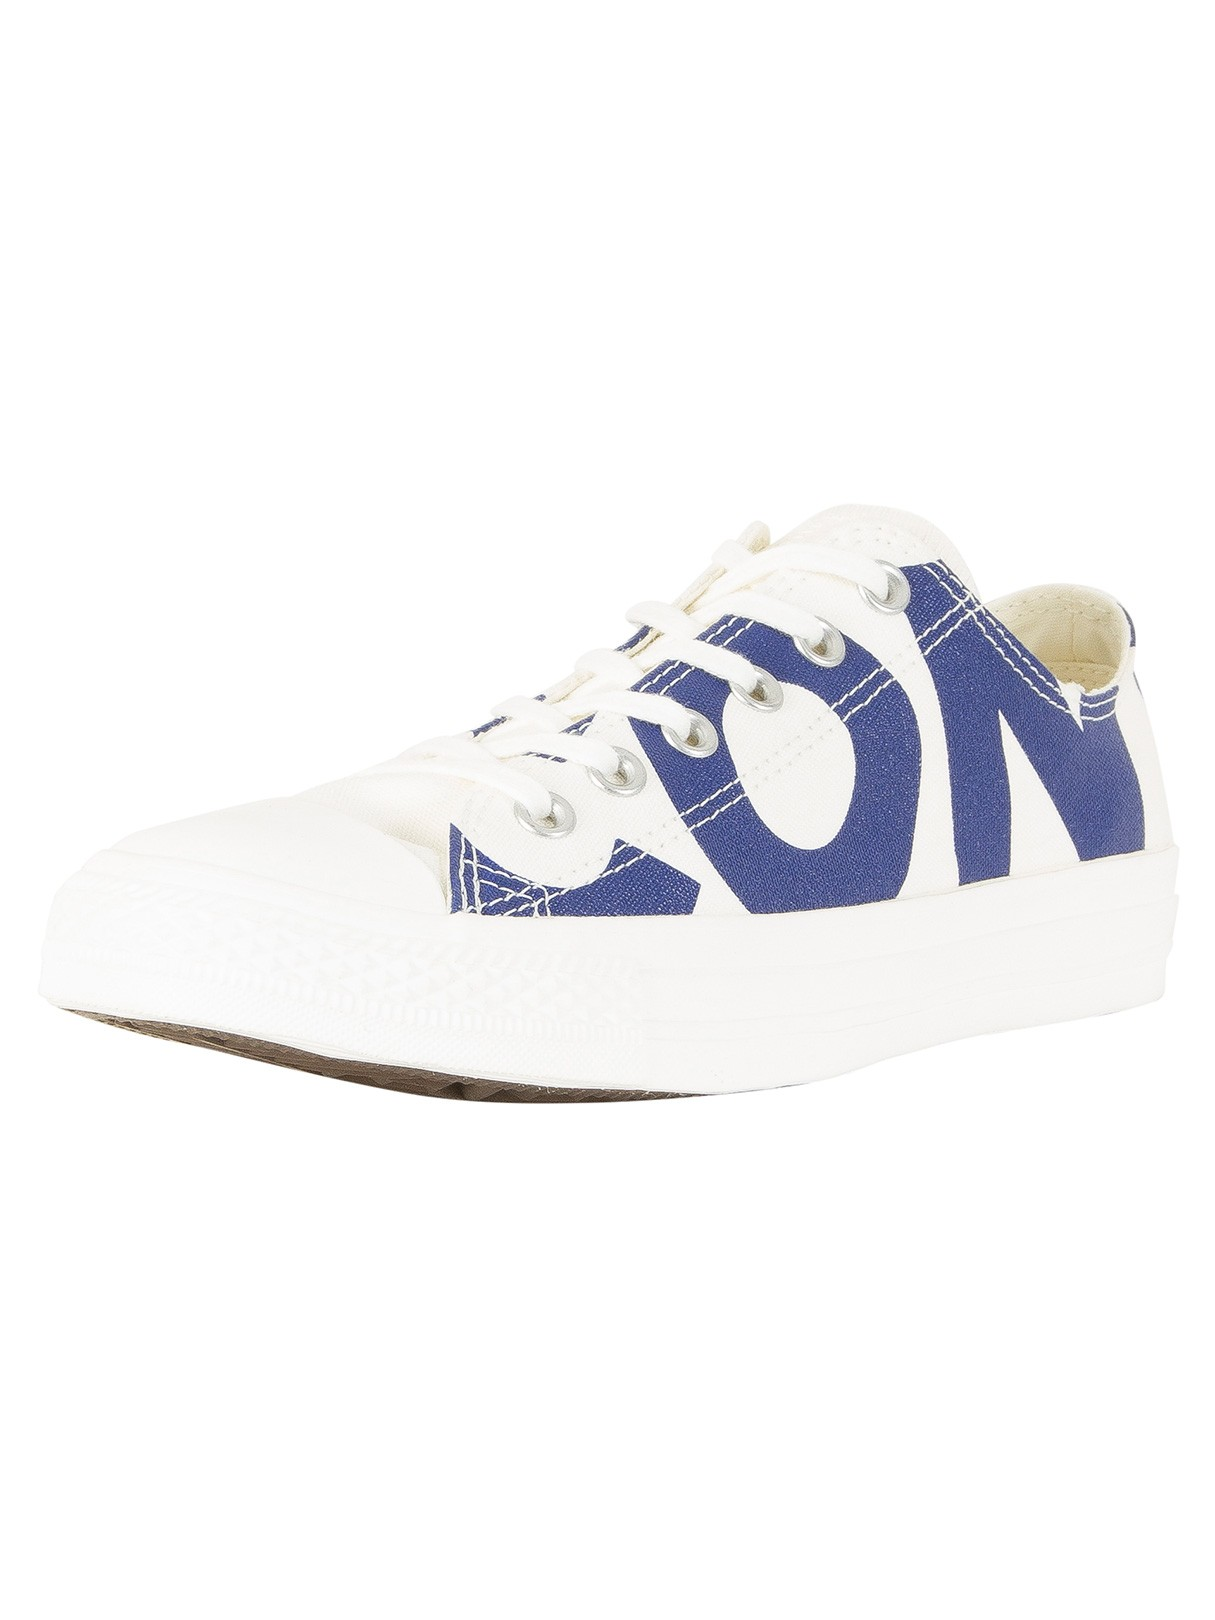 Converse Men's CT All Star OX Trainers, White